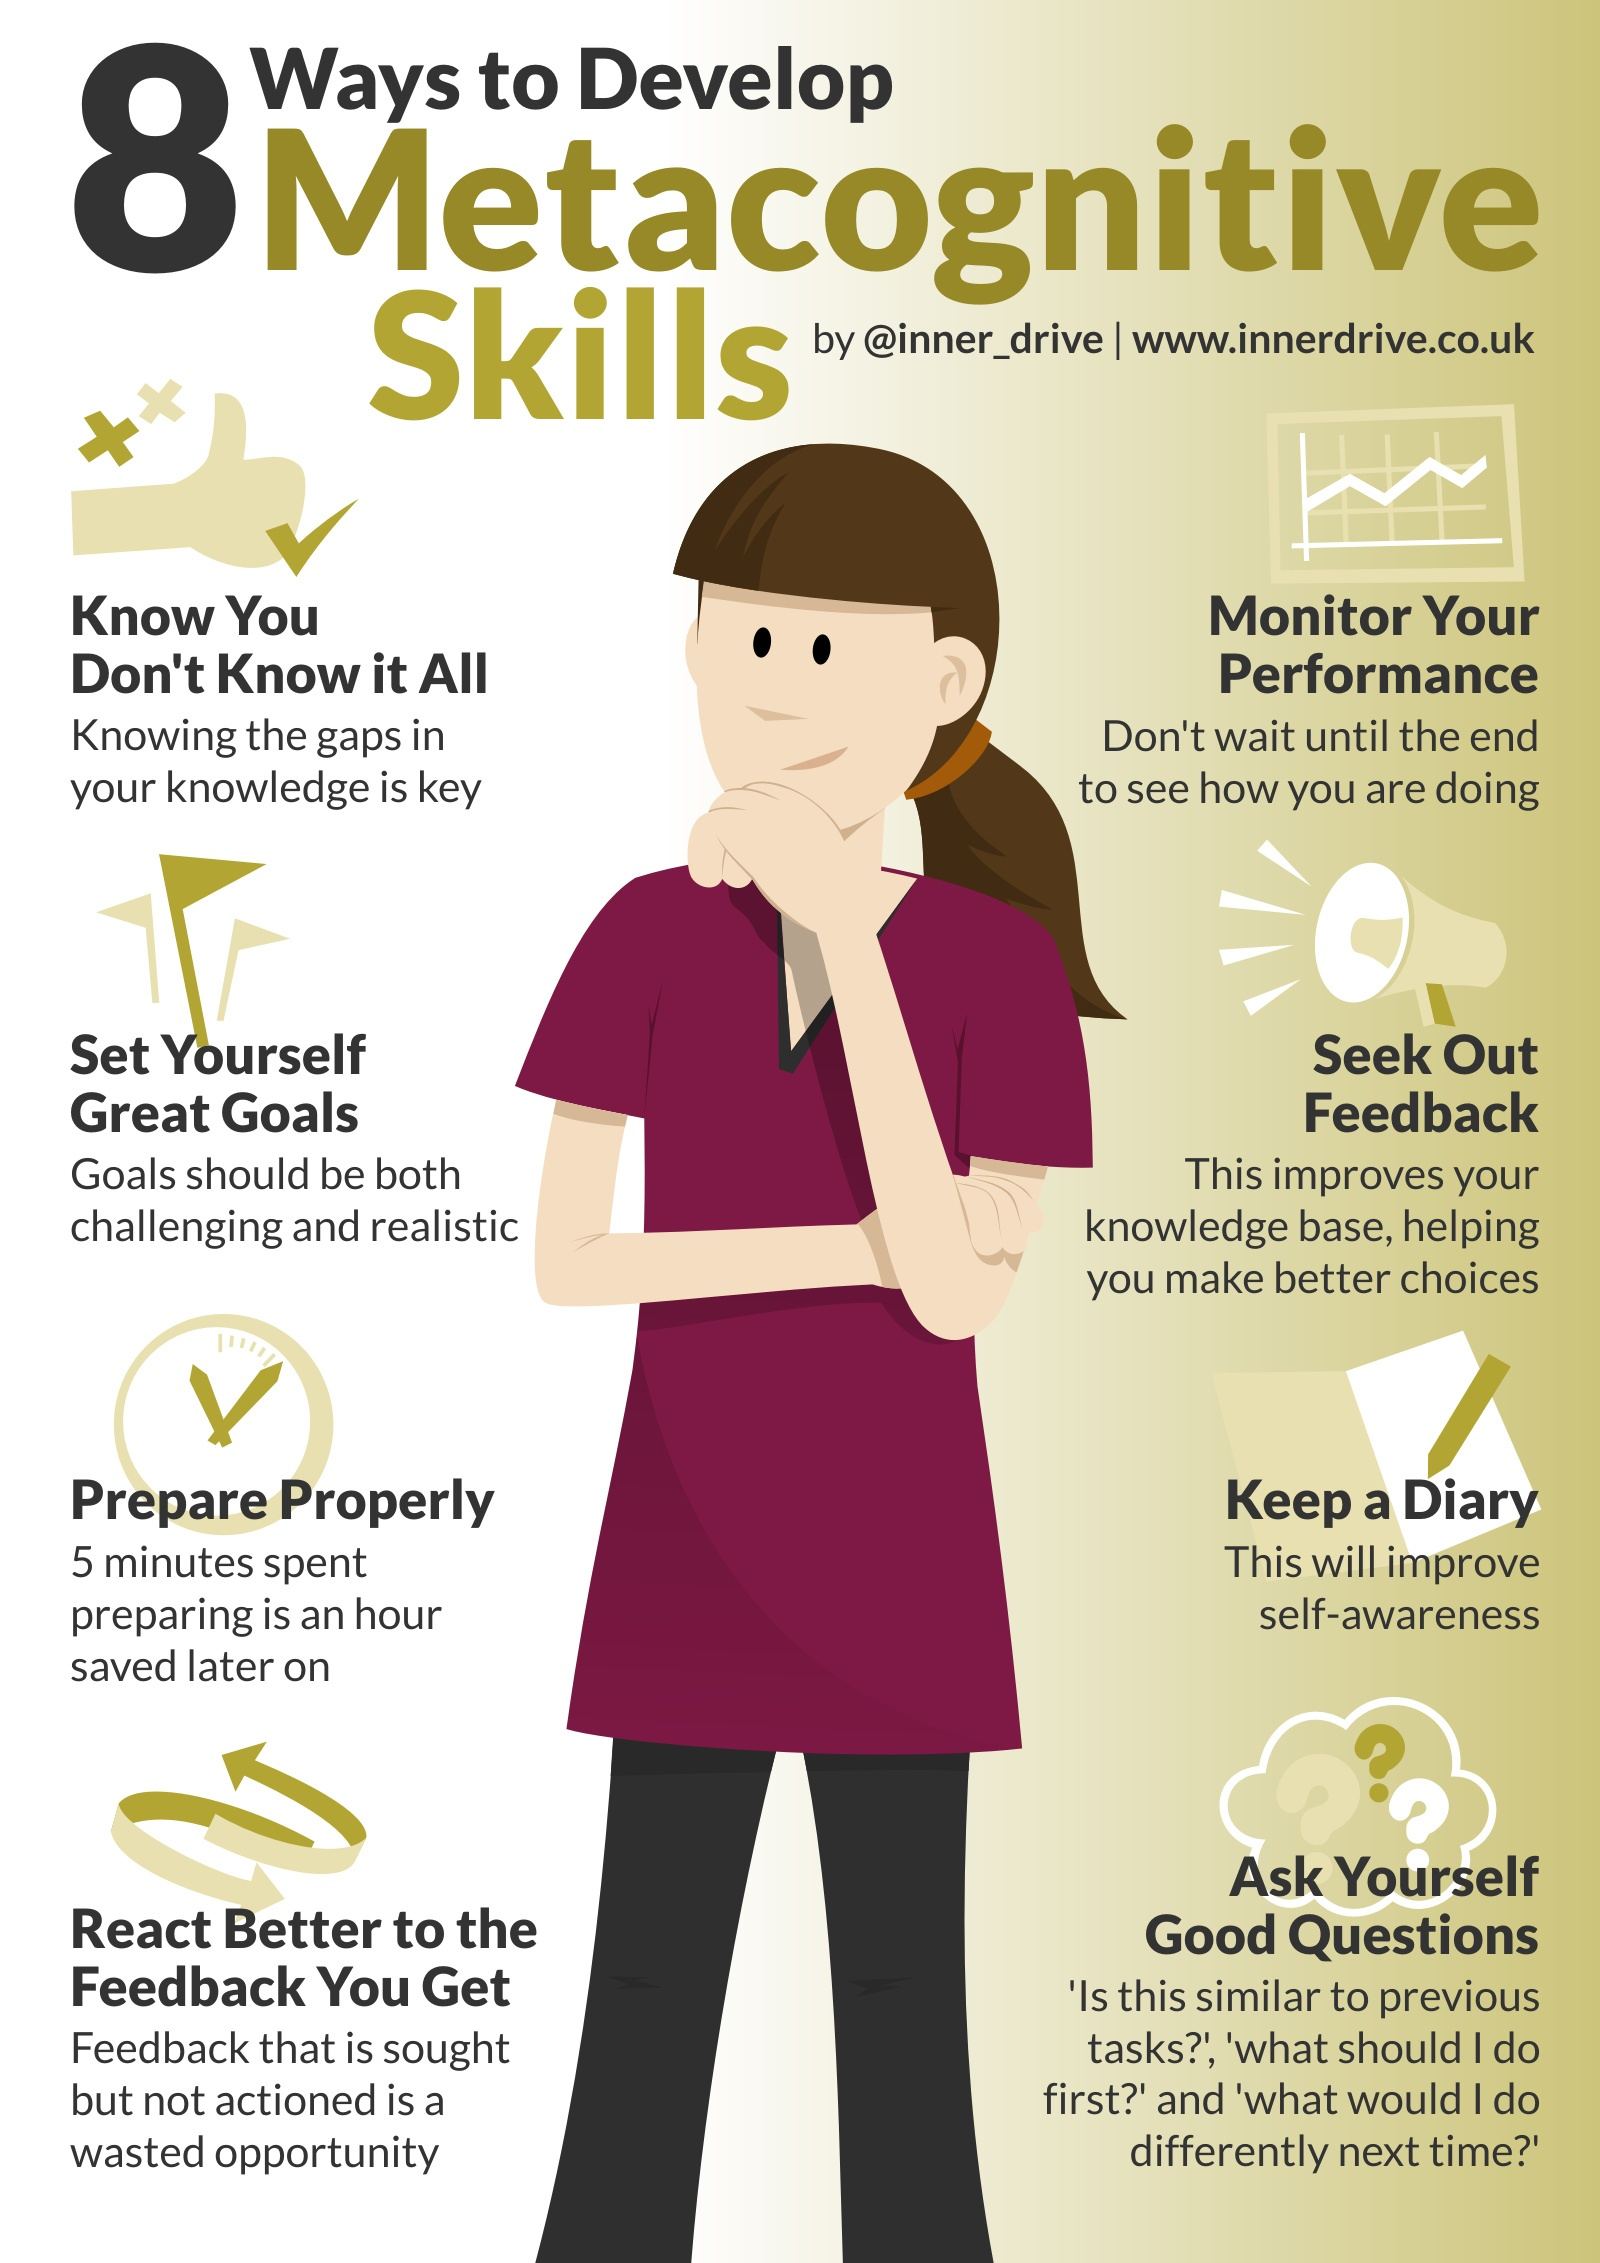 8 ways to develop metacognitive skills infographic